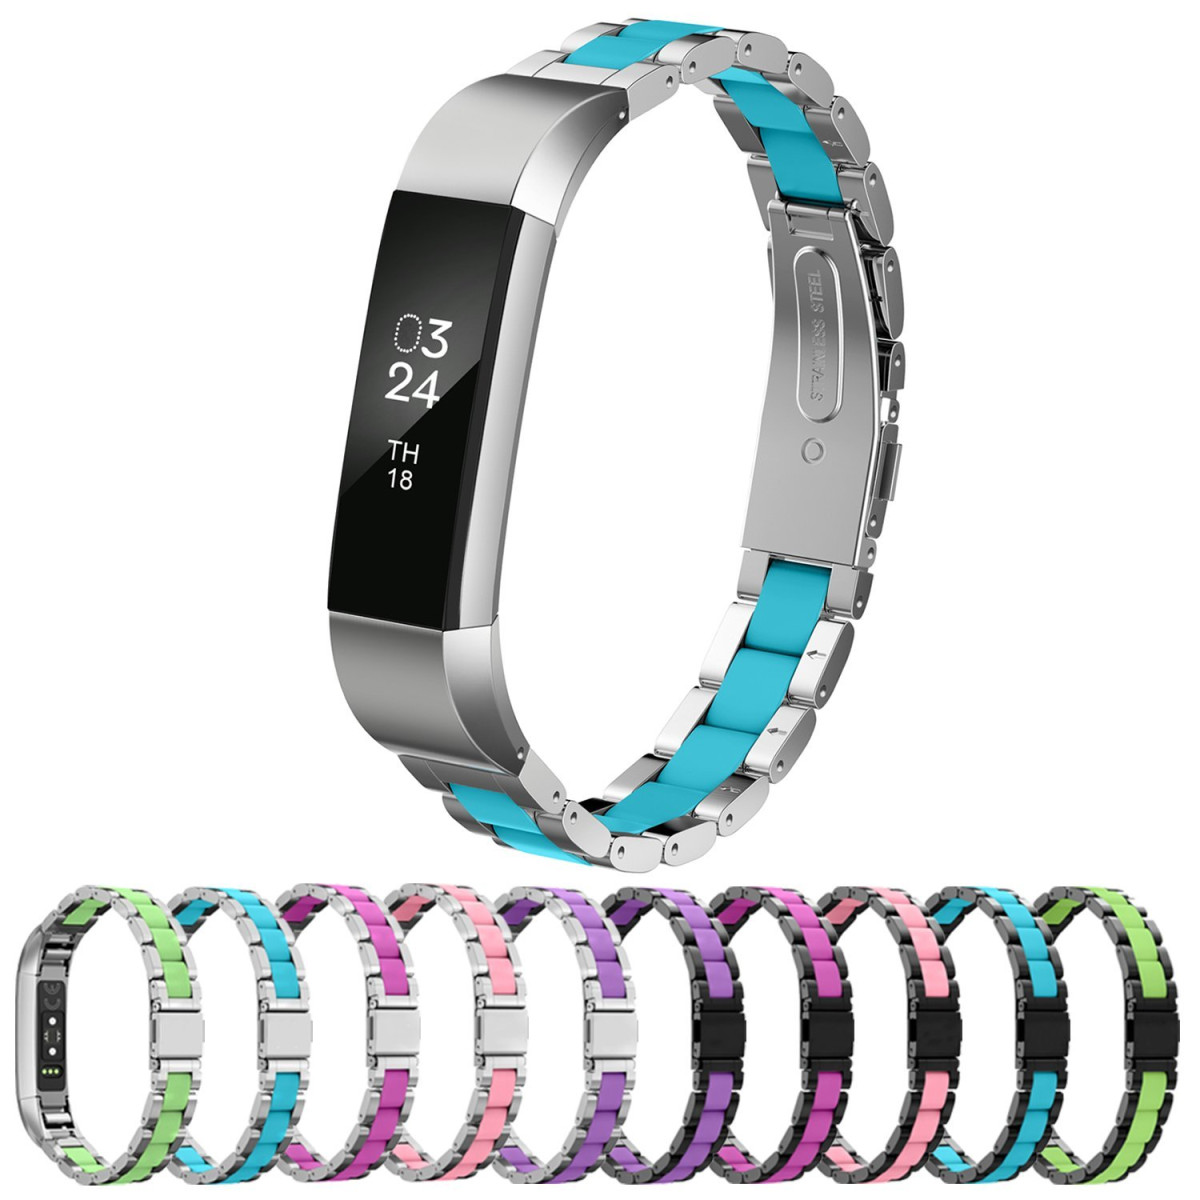 Greeninsync Fitbit Alta Bands Replacement Band Fits Plum Size Large Hr Metal Accessory Wristband Small